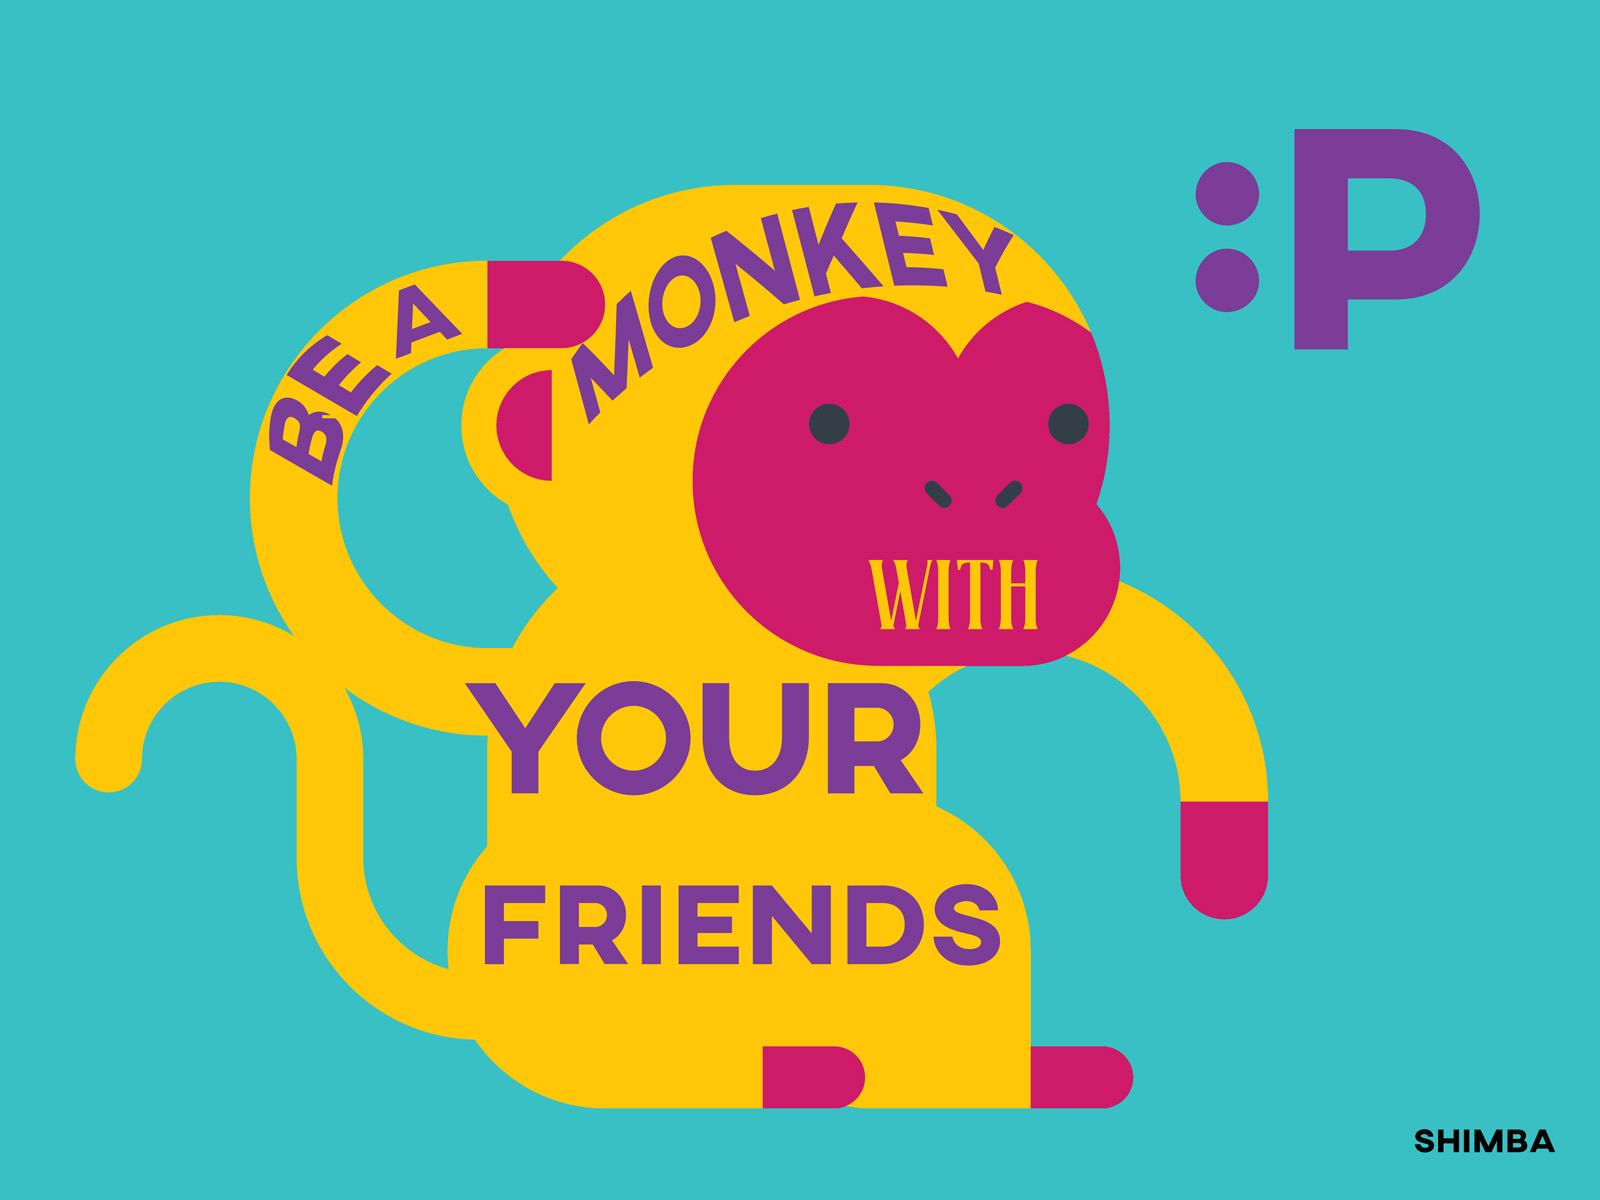 Be a monkey with your friends :P